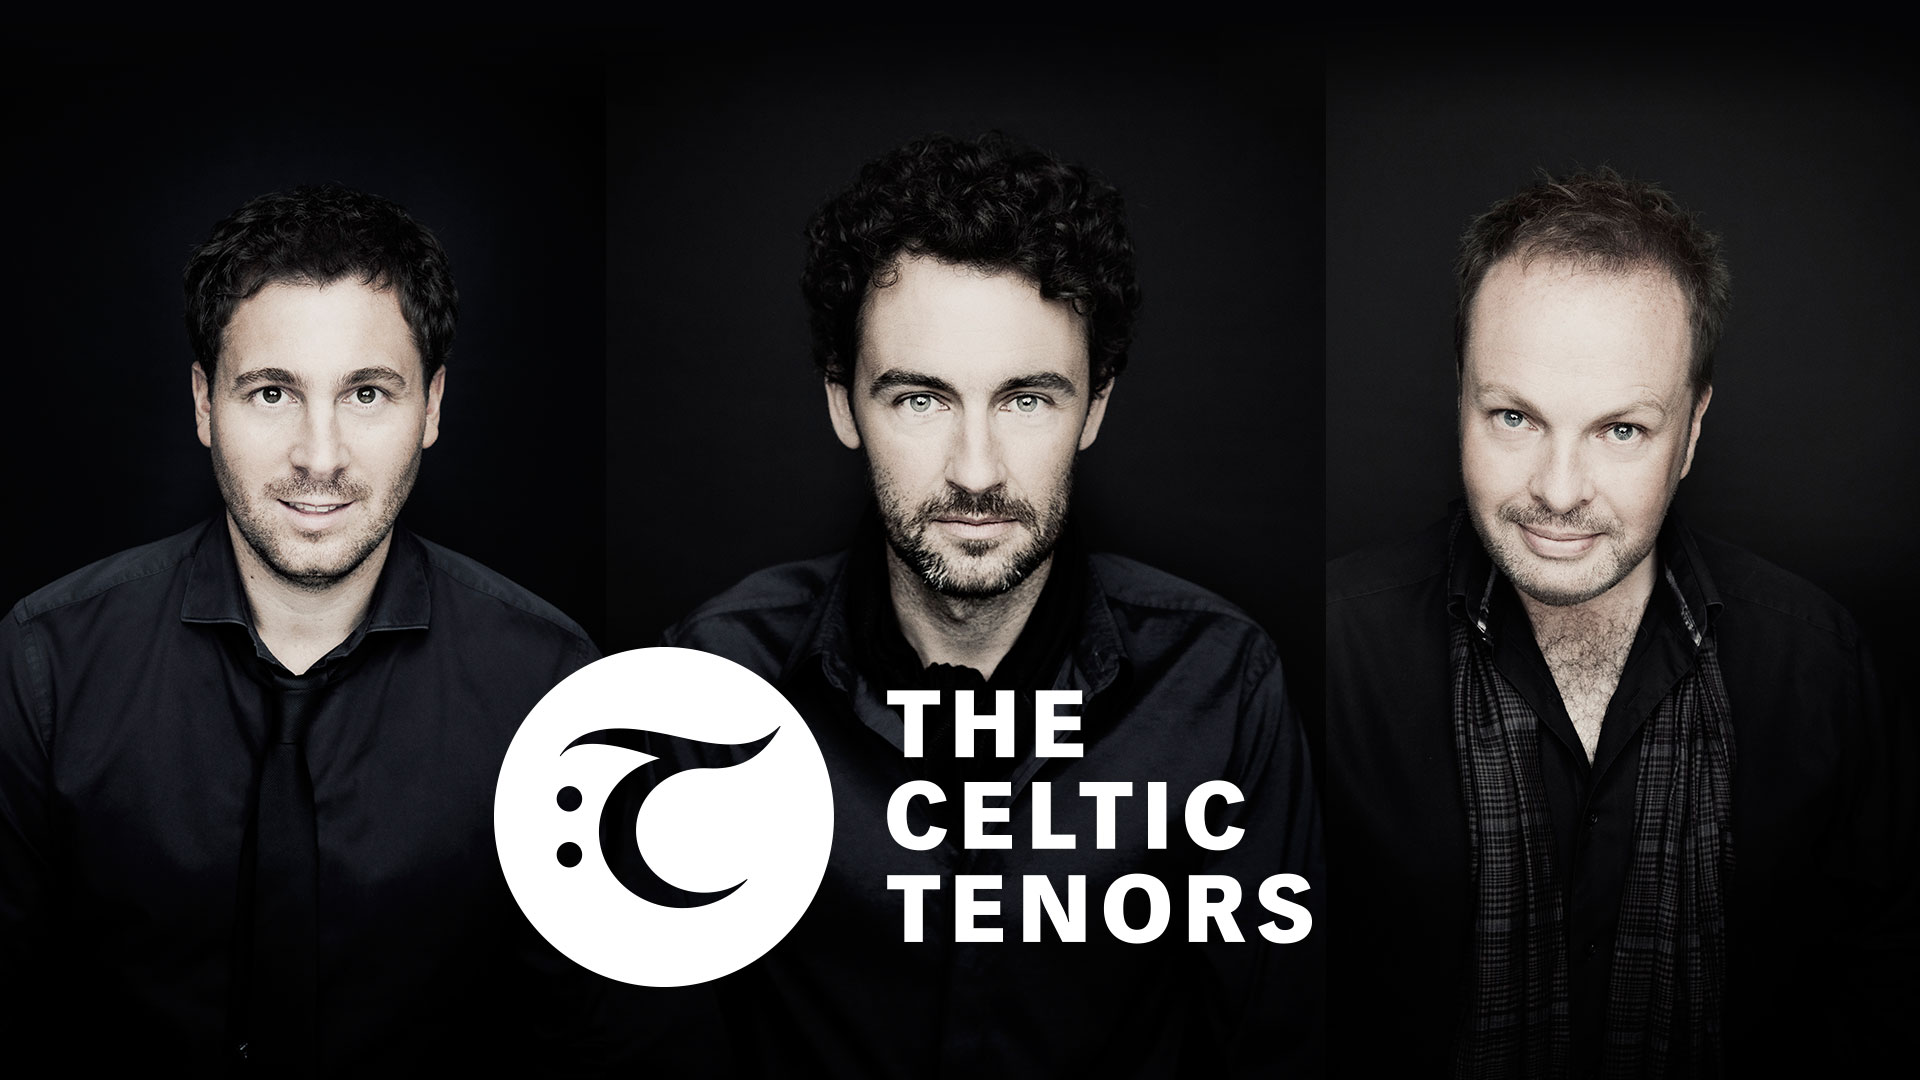 Portfolio: The Celtic Tenors